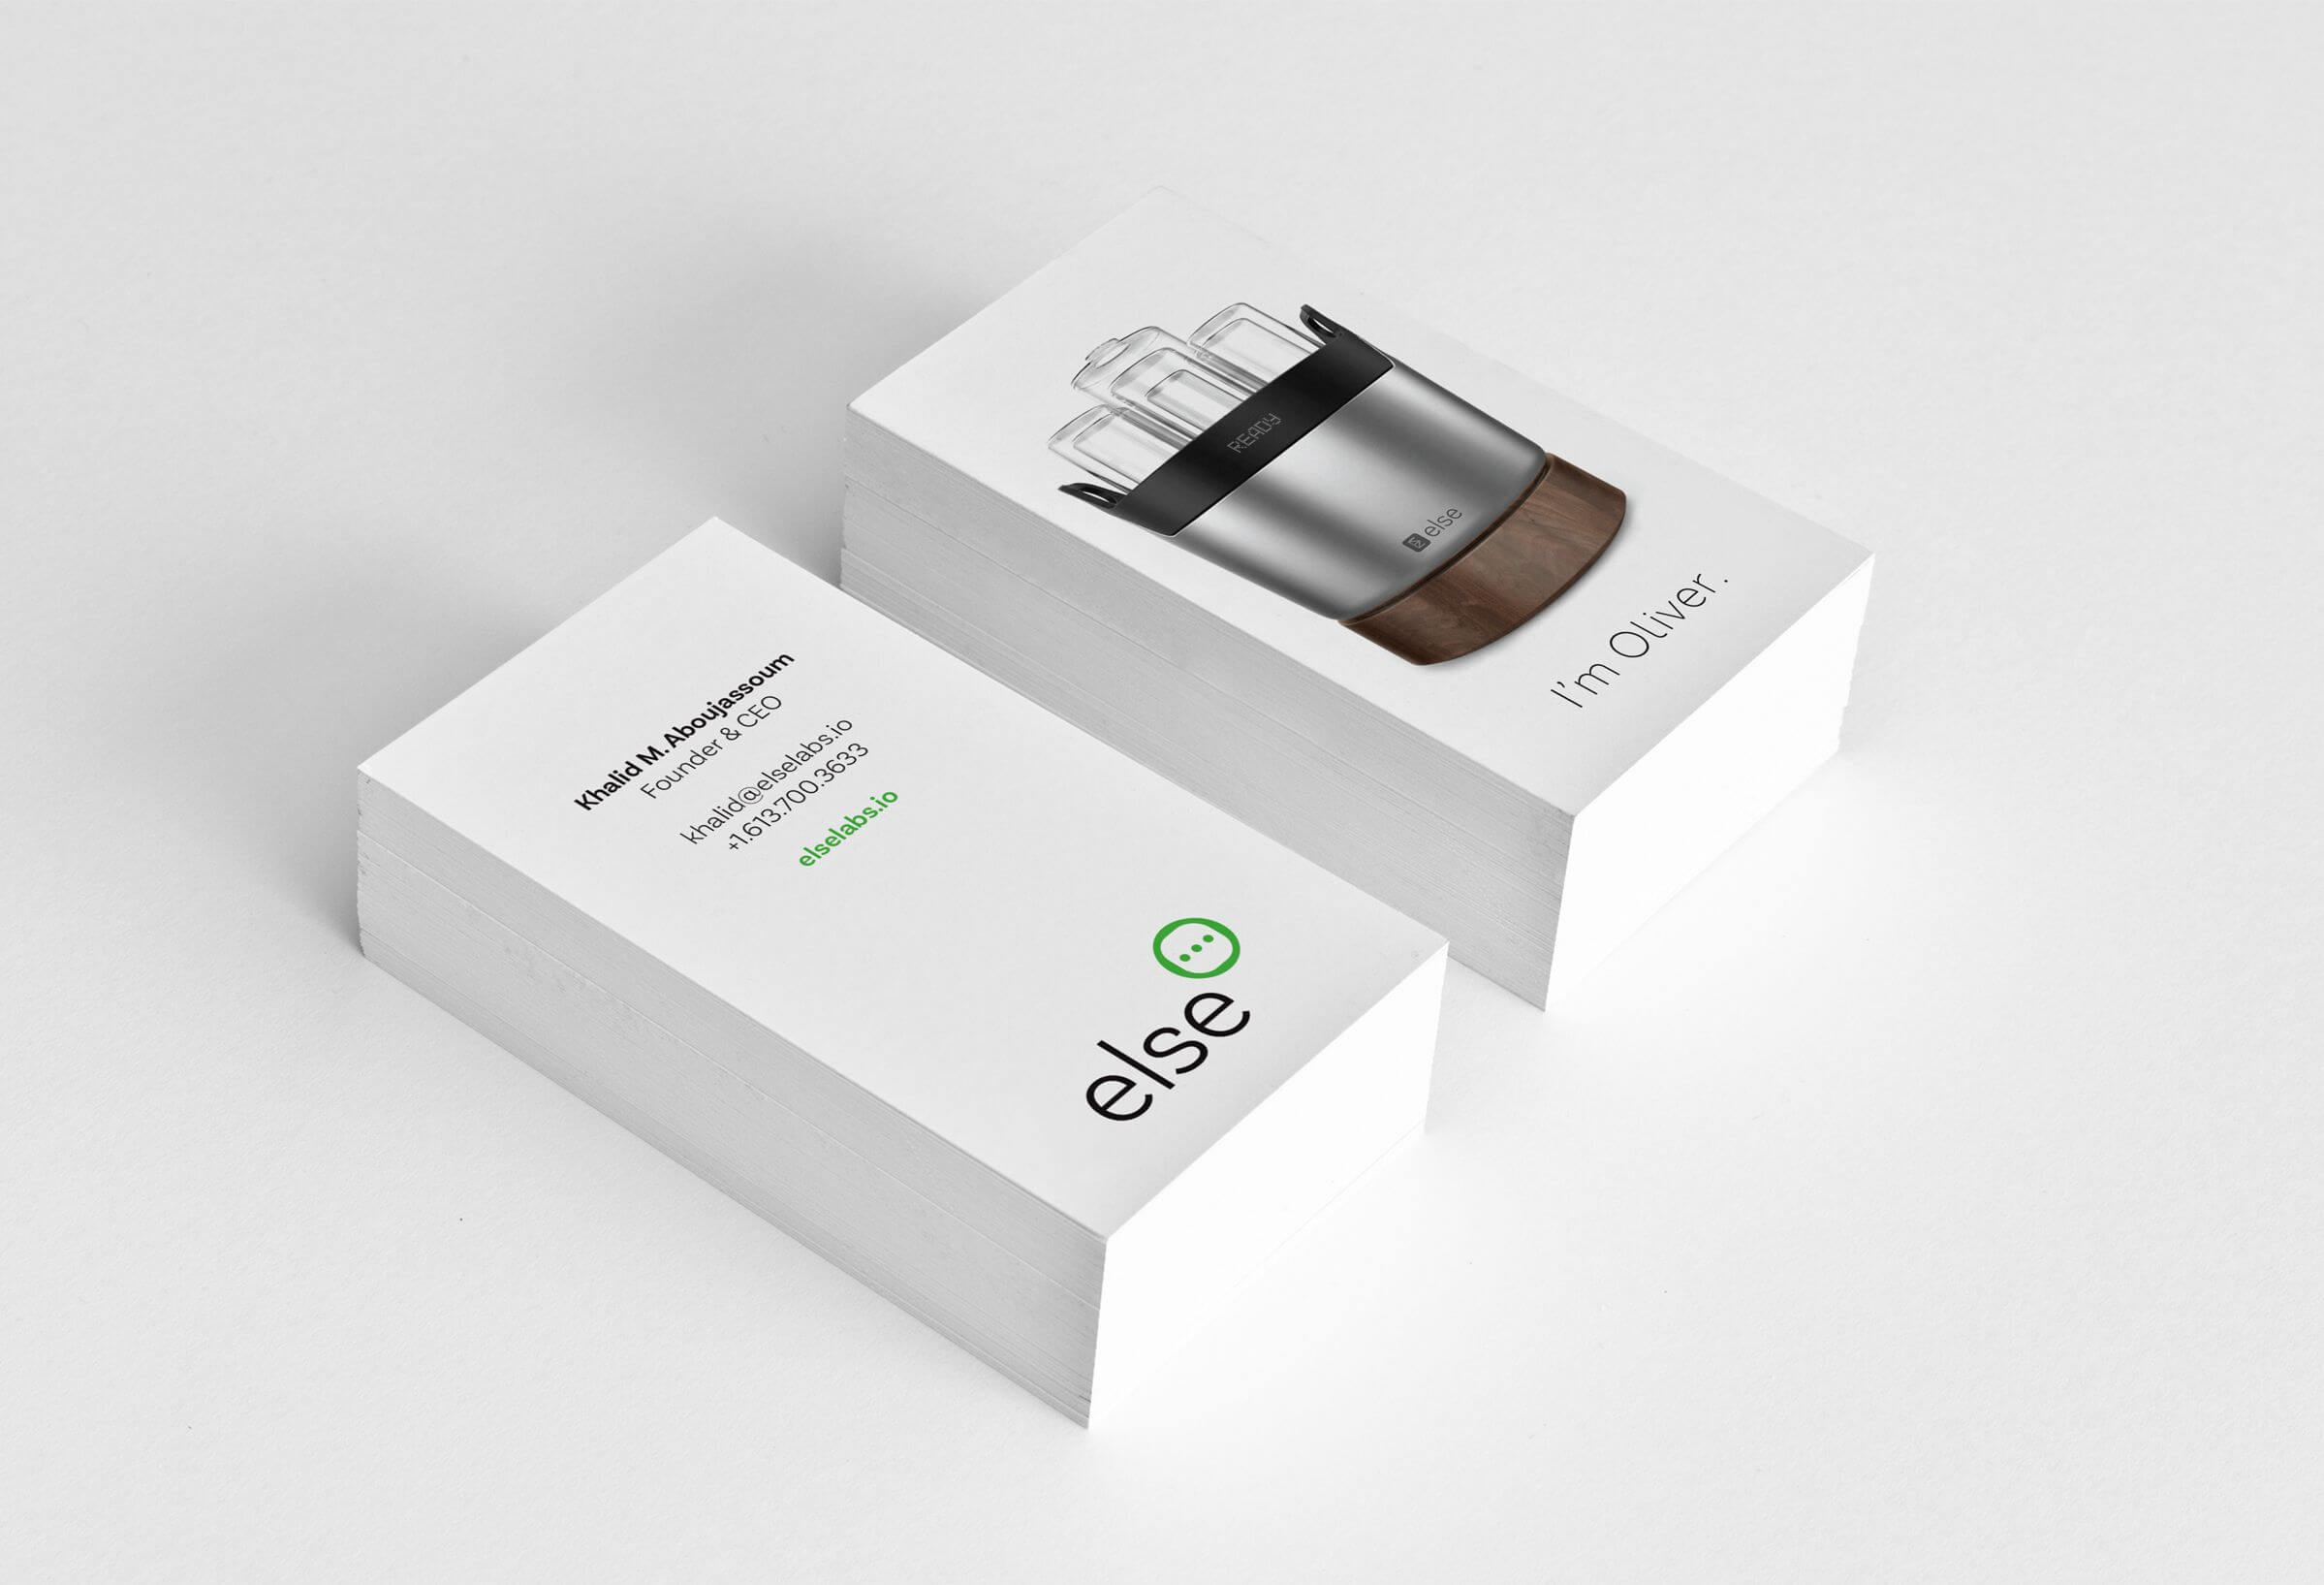 Else Labs business cards version 1 by Ottawa graphic designer idApostle